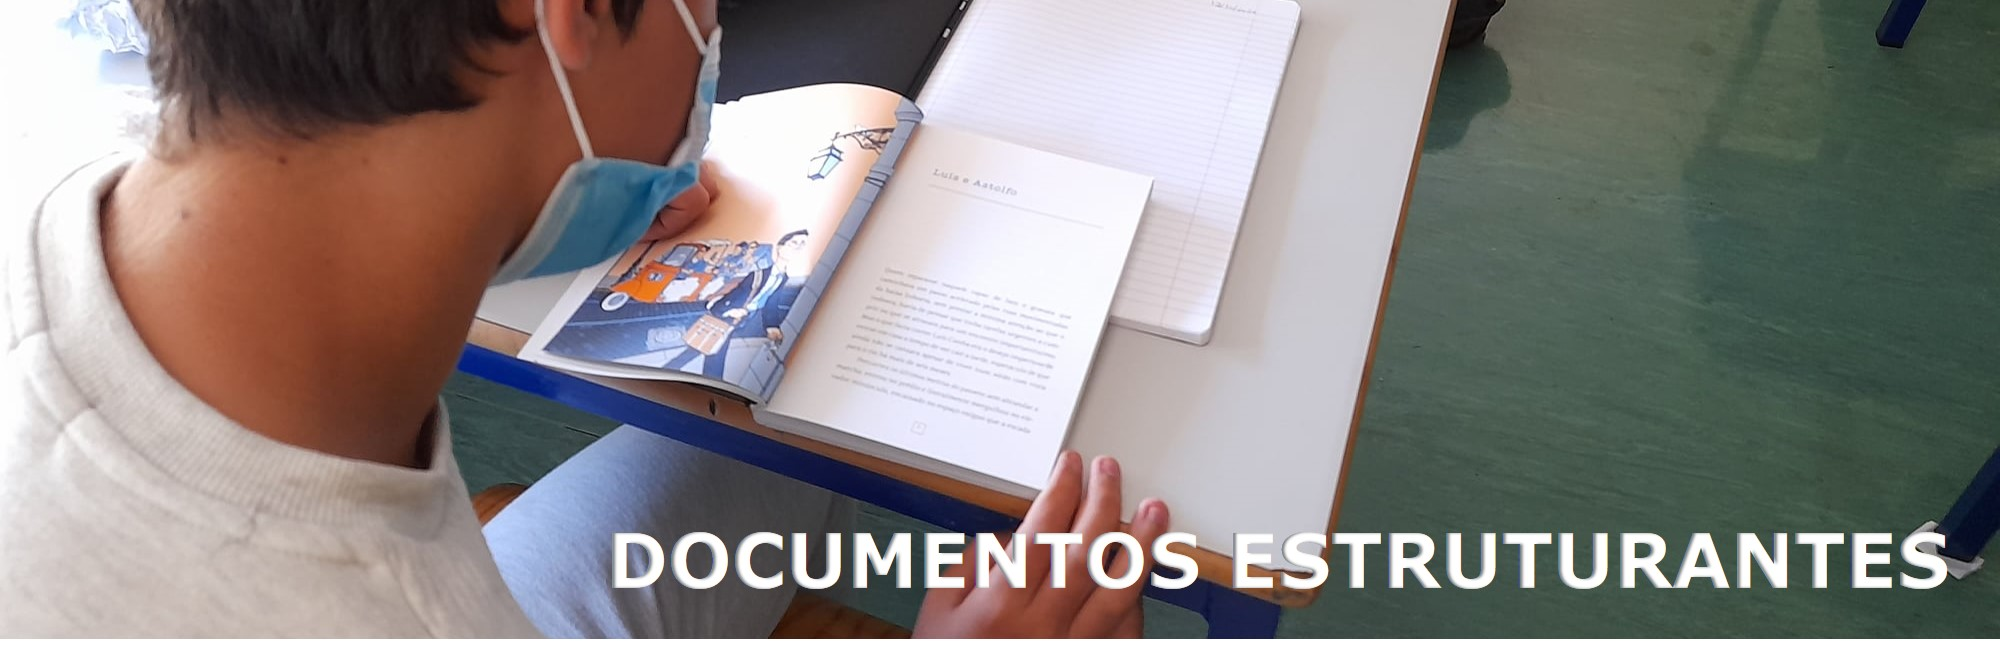 Documentos Estruturantes